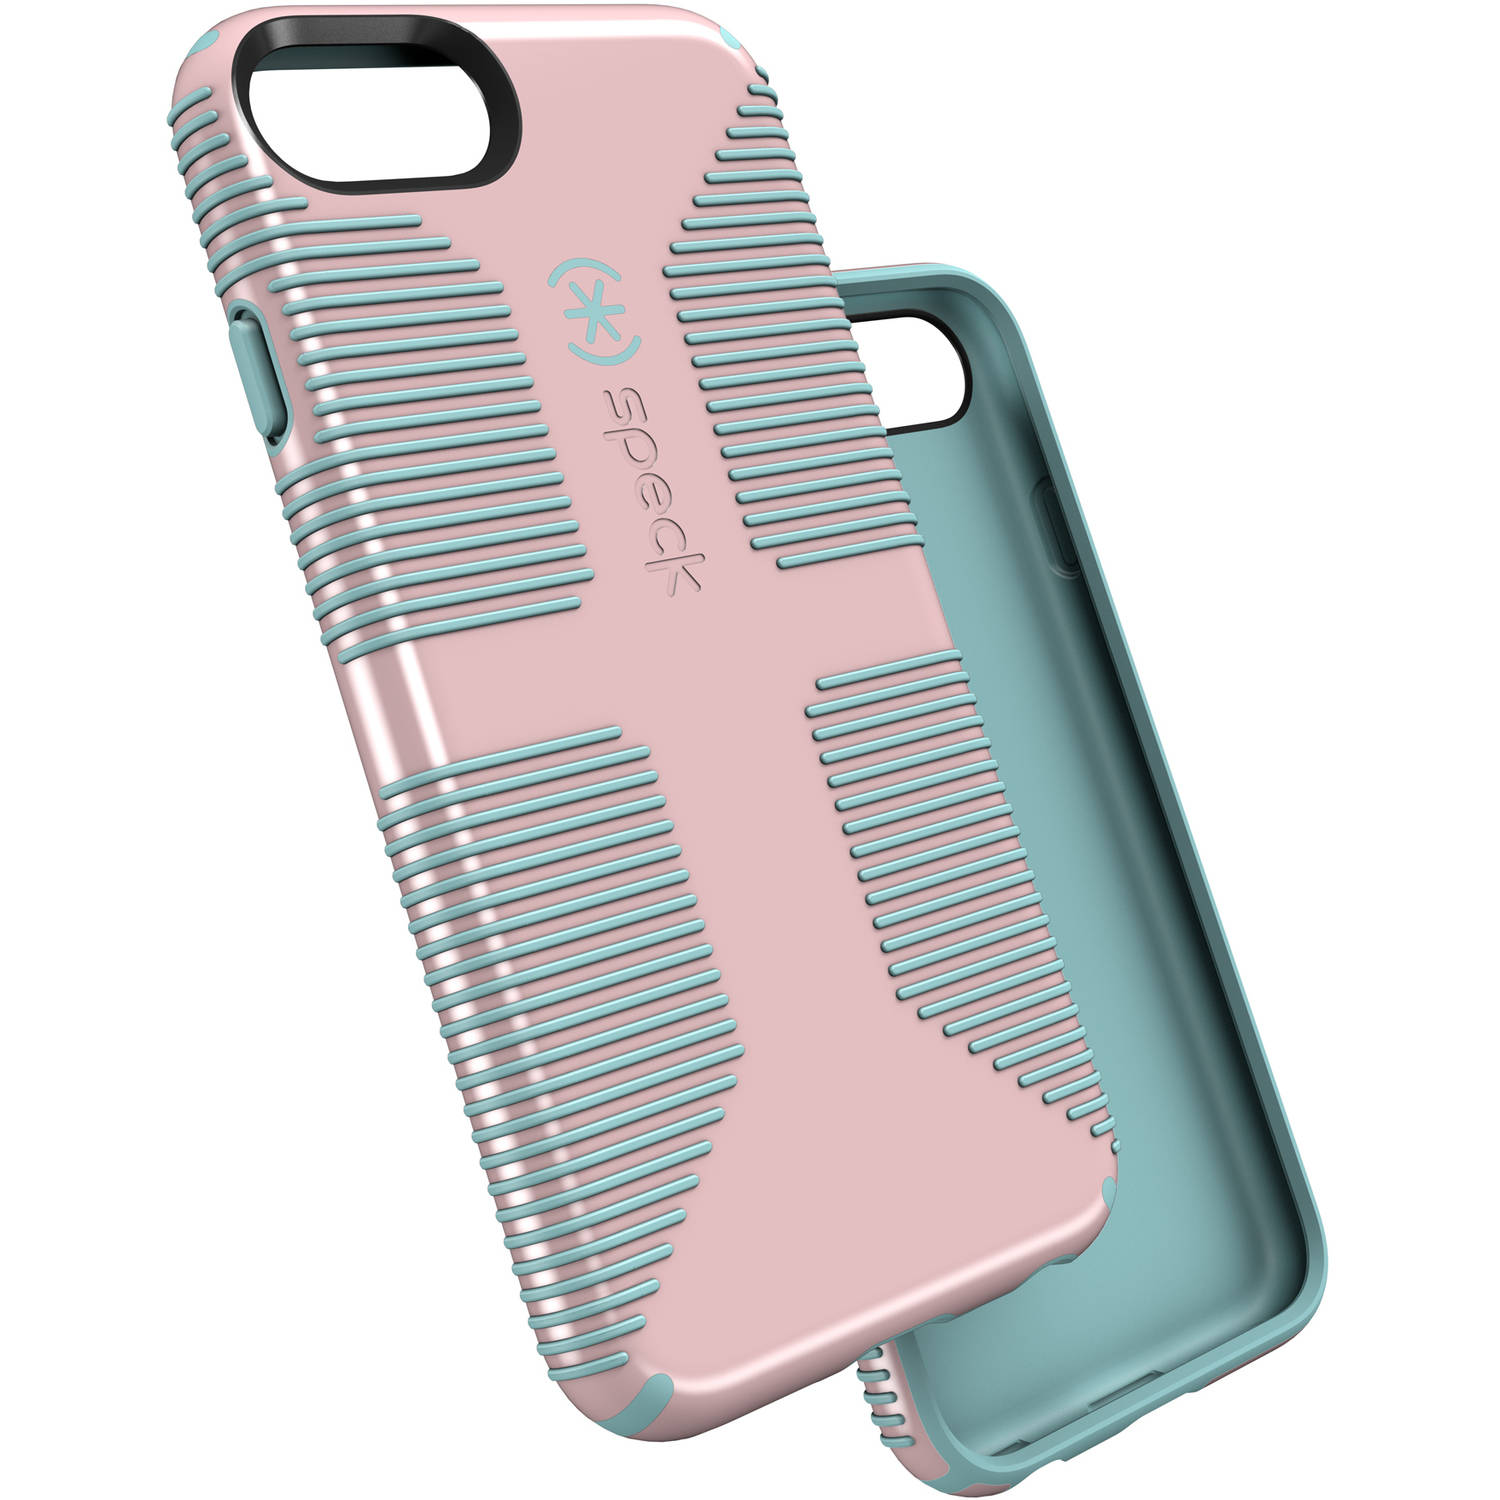 Speck CandyShell Grip Case for Apple iPhone 6/6S/7/8